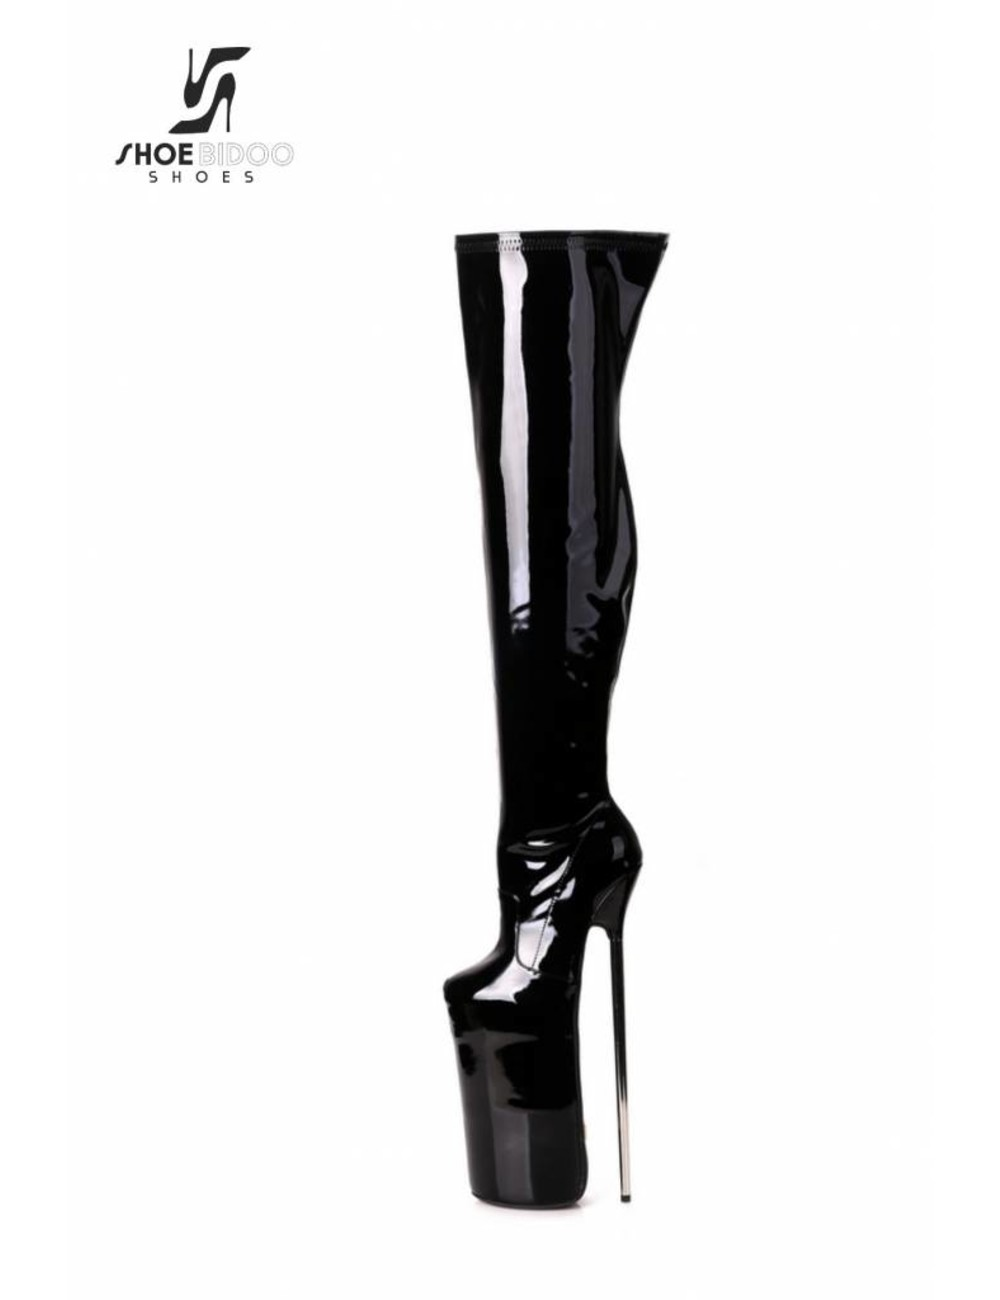 Giaro Black patent fetish monster thigh boots with ultra high silver metal heels